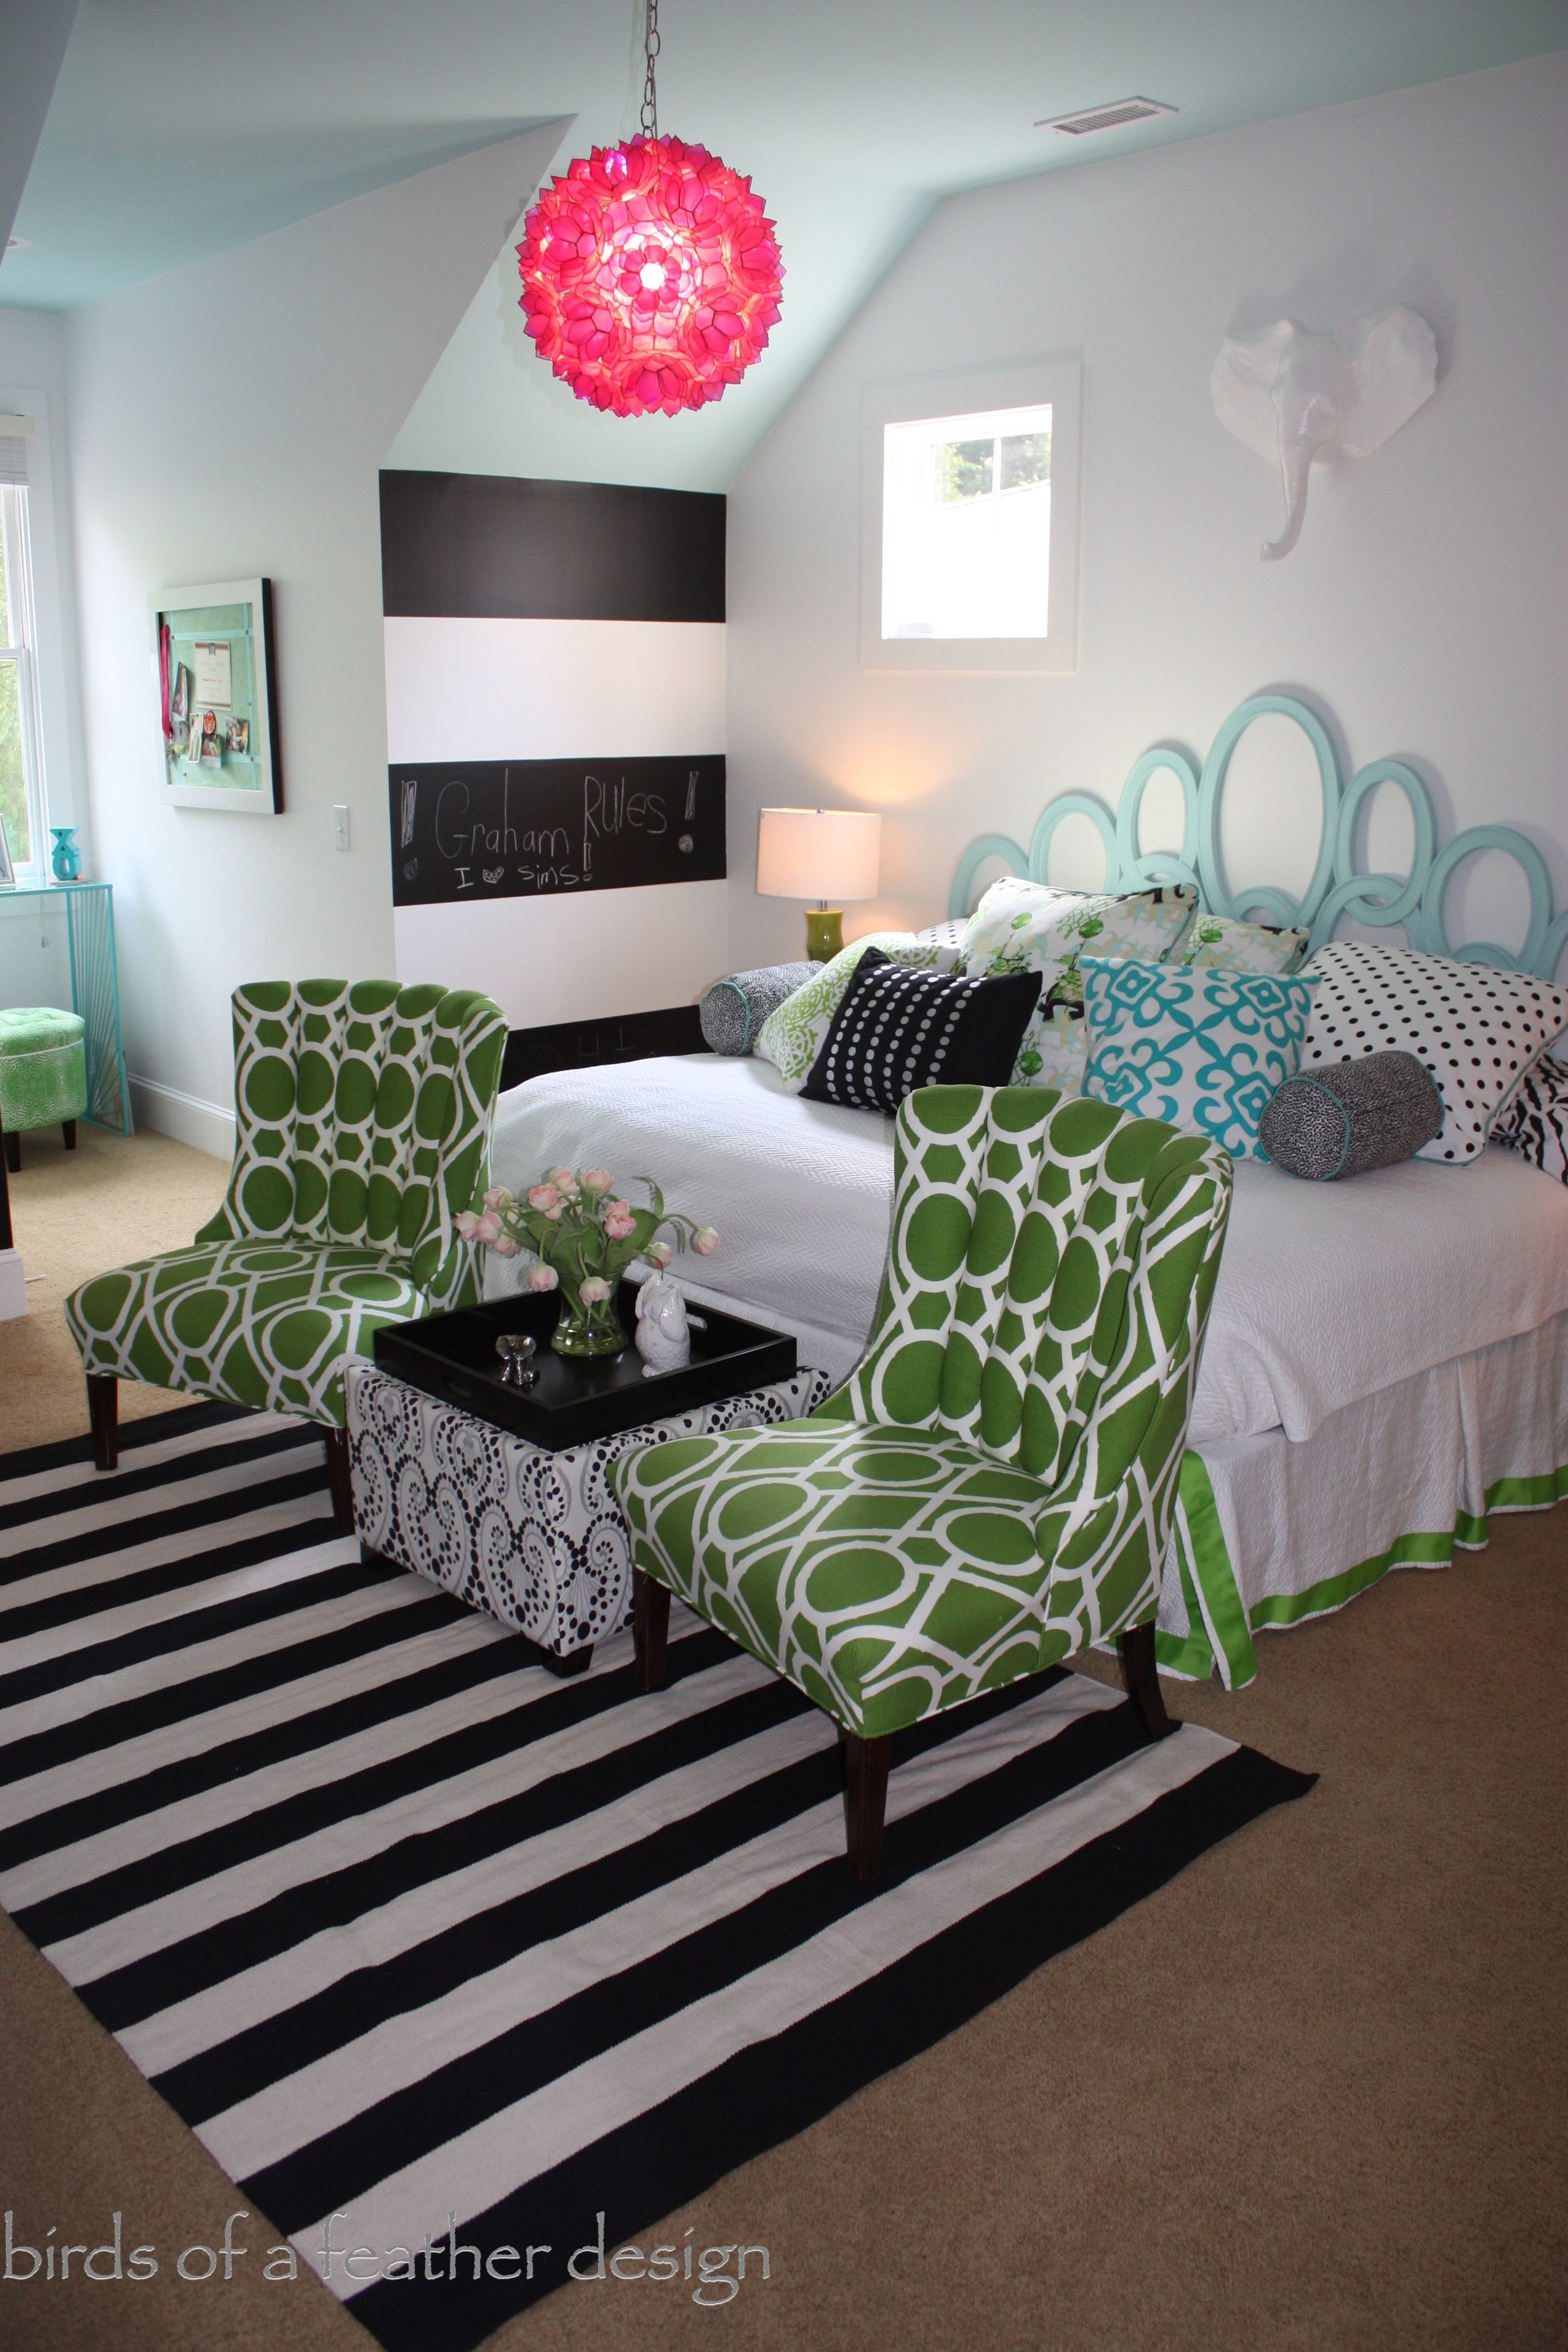 Figure Eight Island Renovation Reveal With Images Girl Room